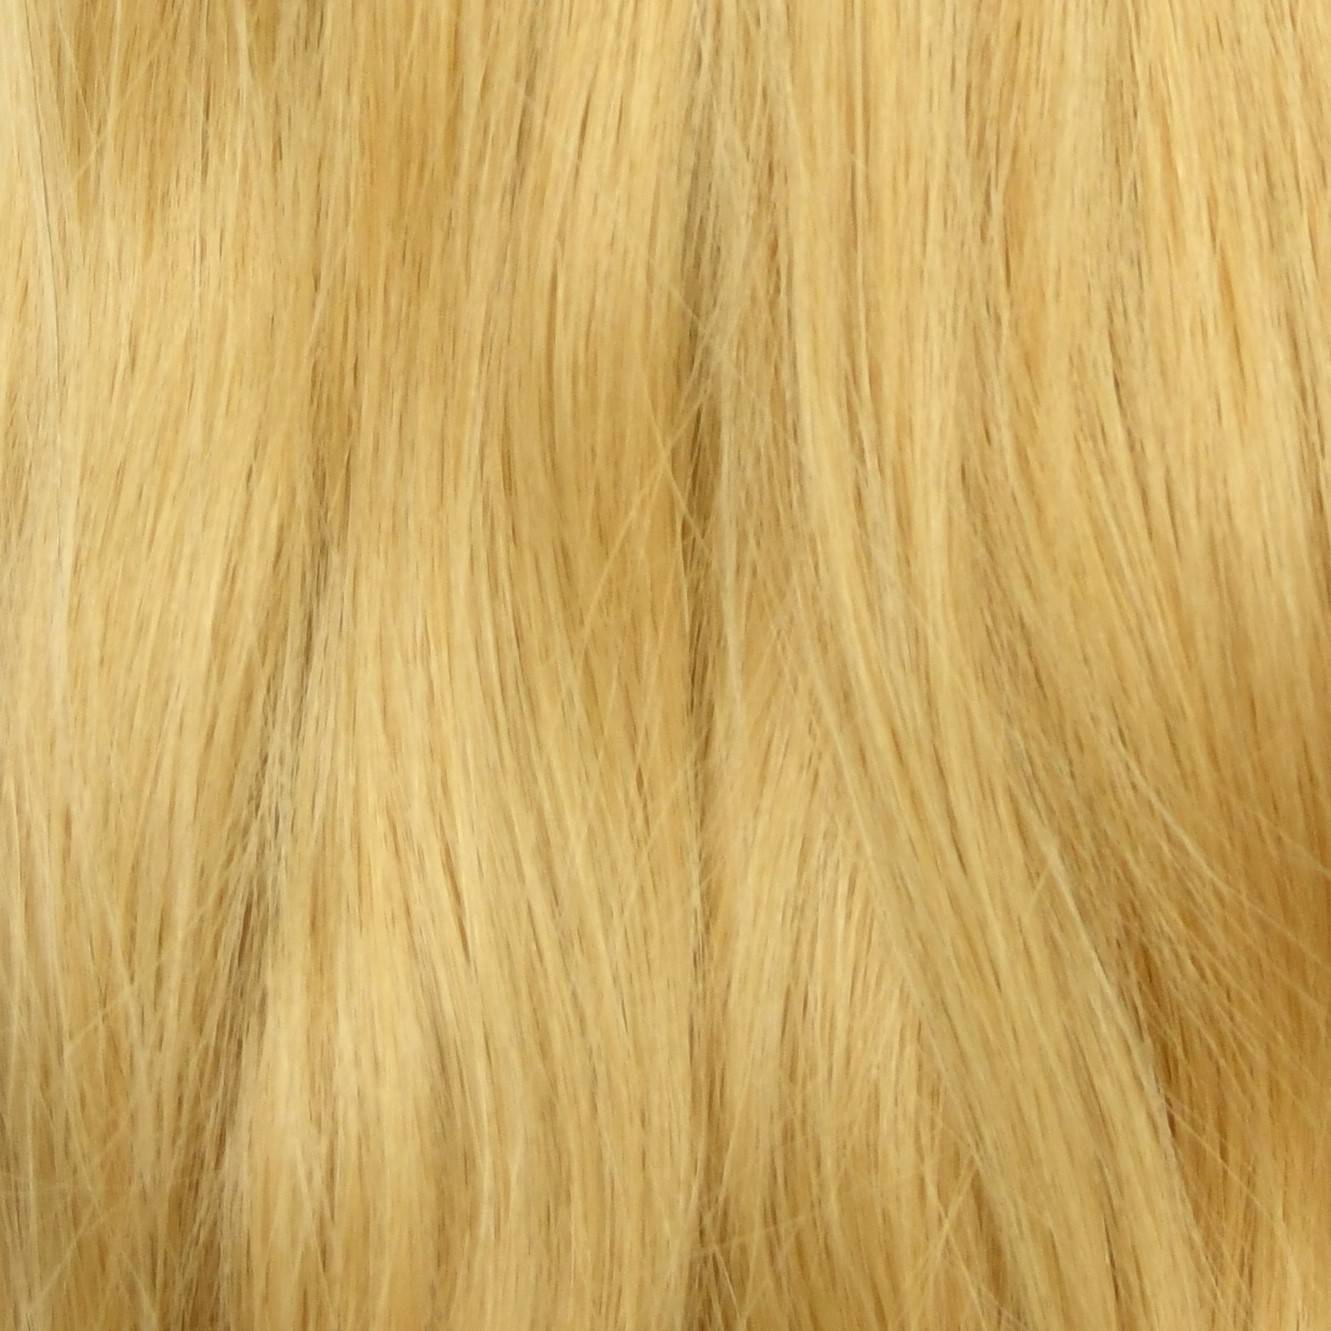 silver color hair extensions sample in hair color chart